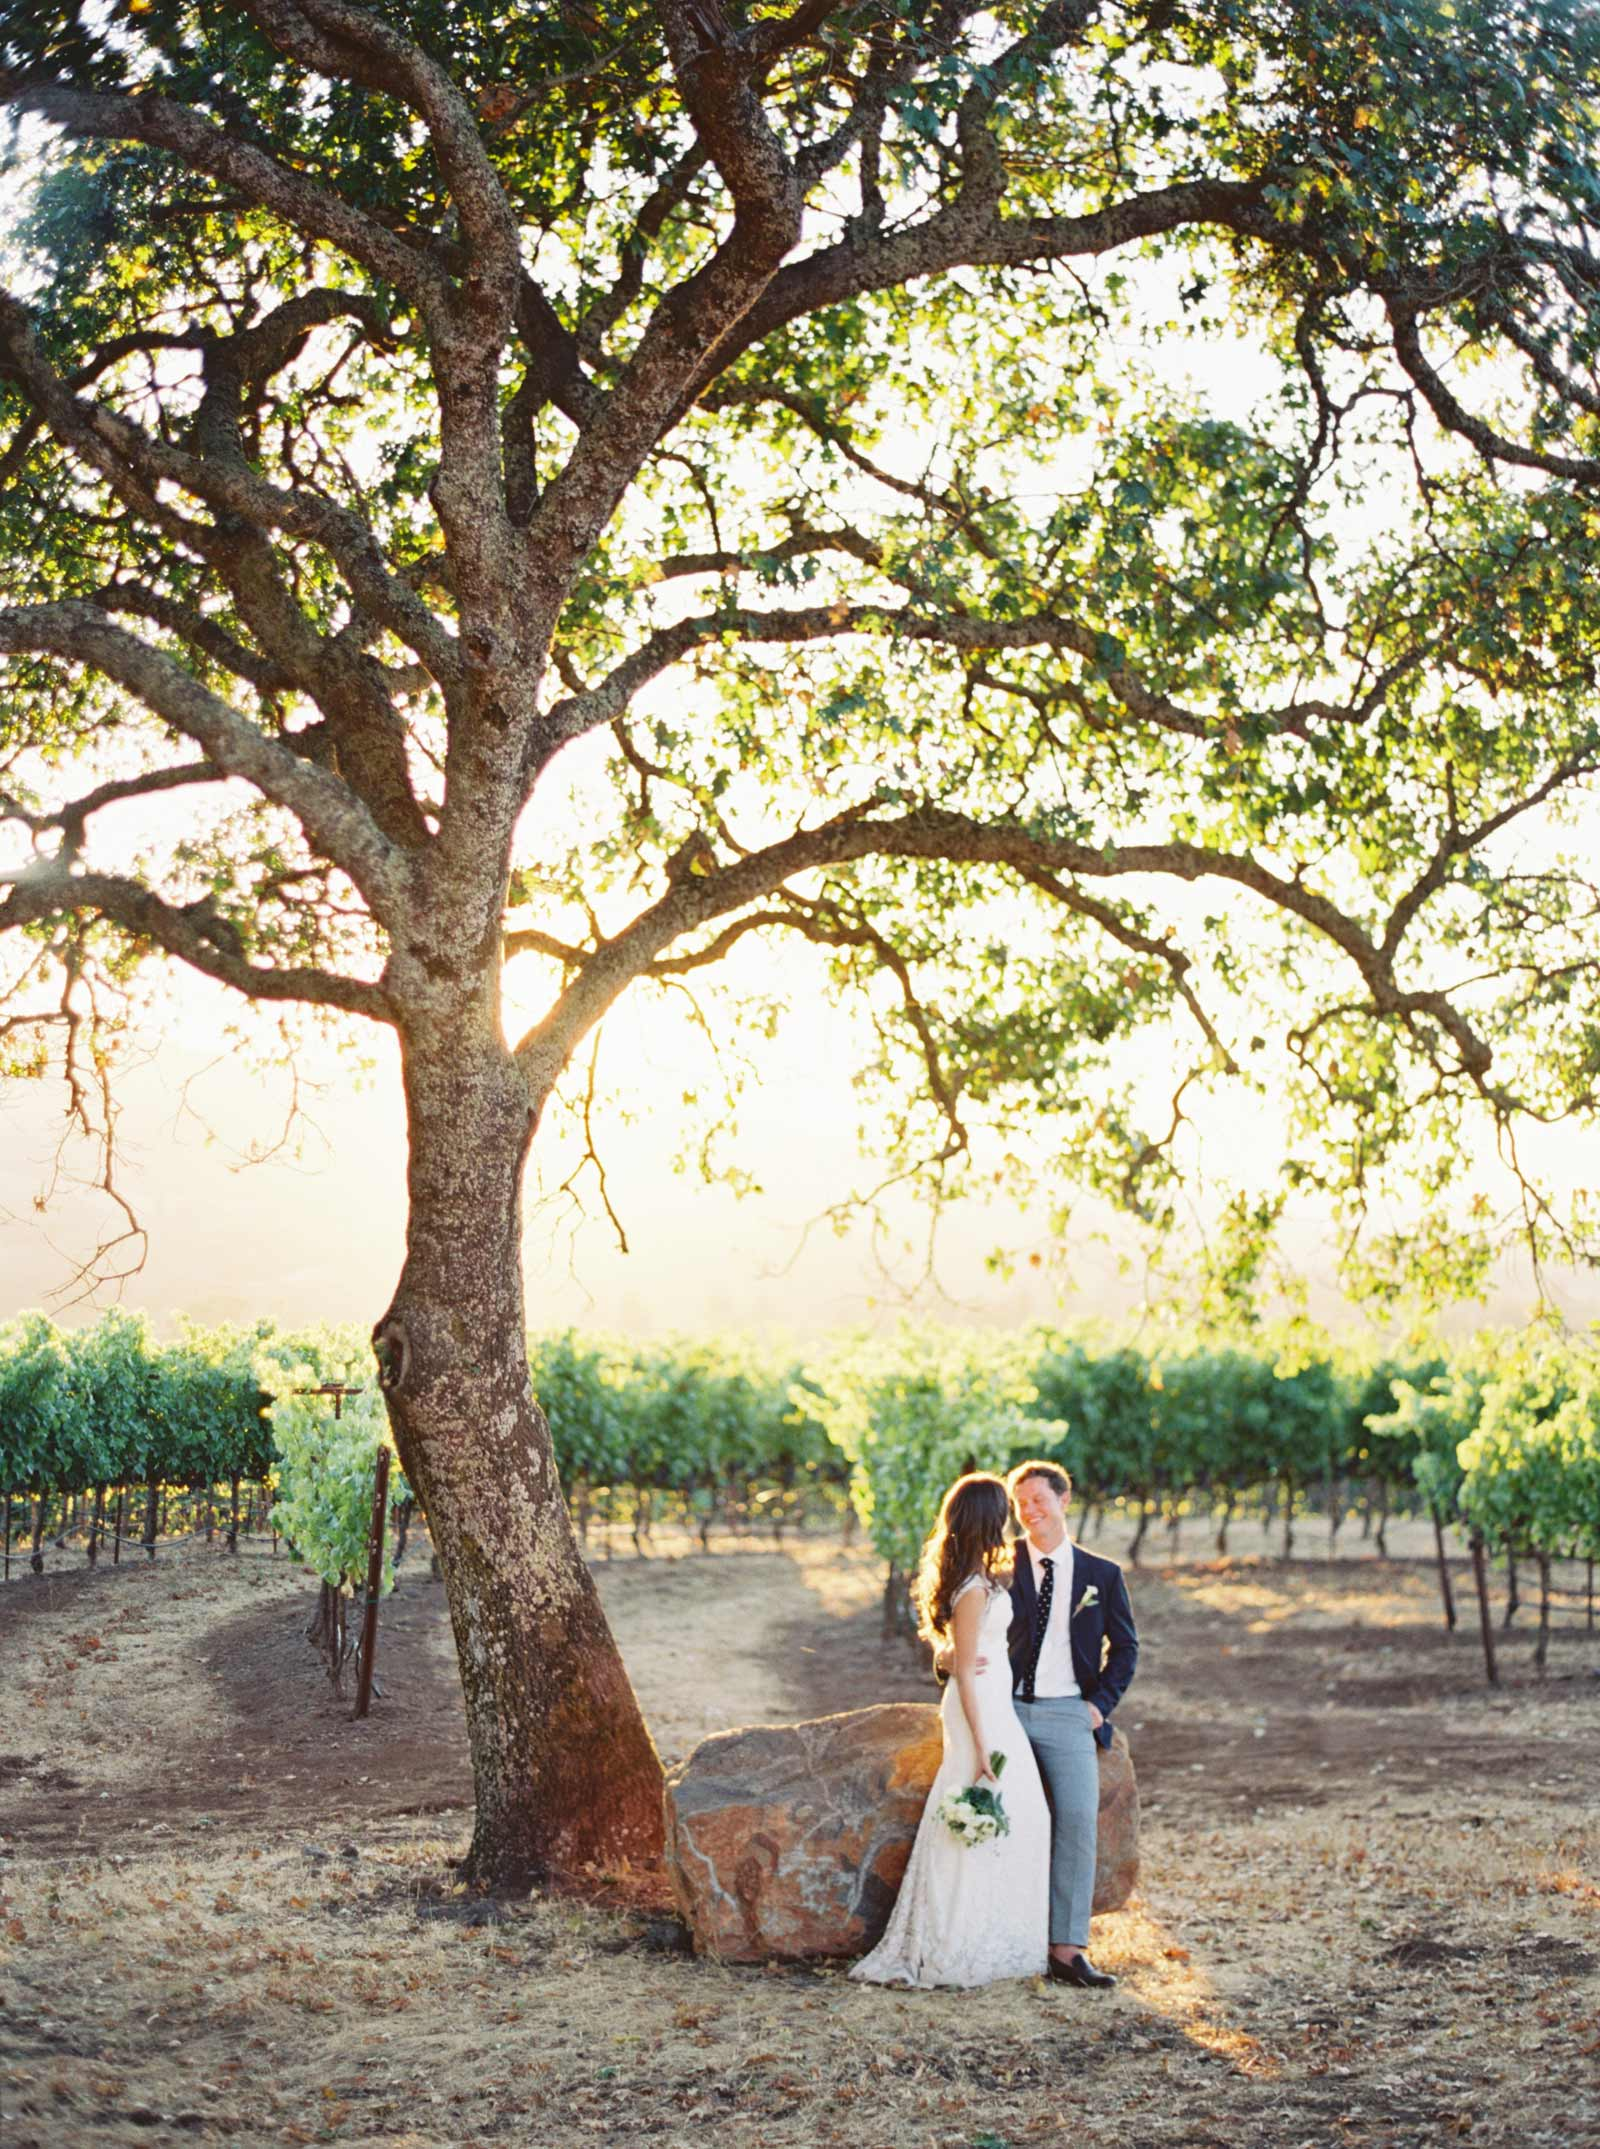 Napa-wedding-Kunde-winery-004.jpg